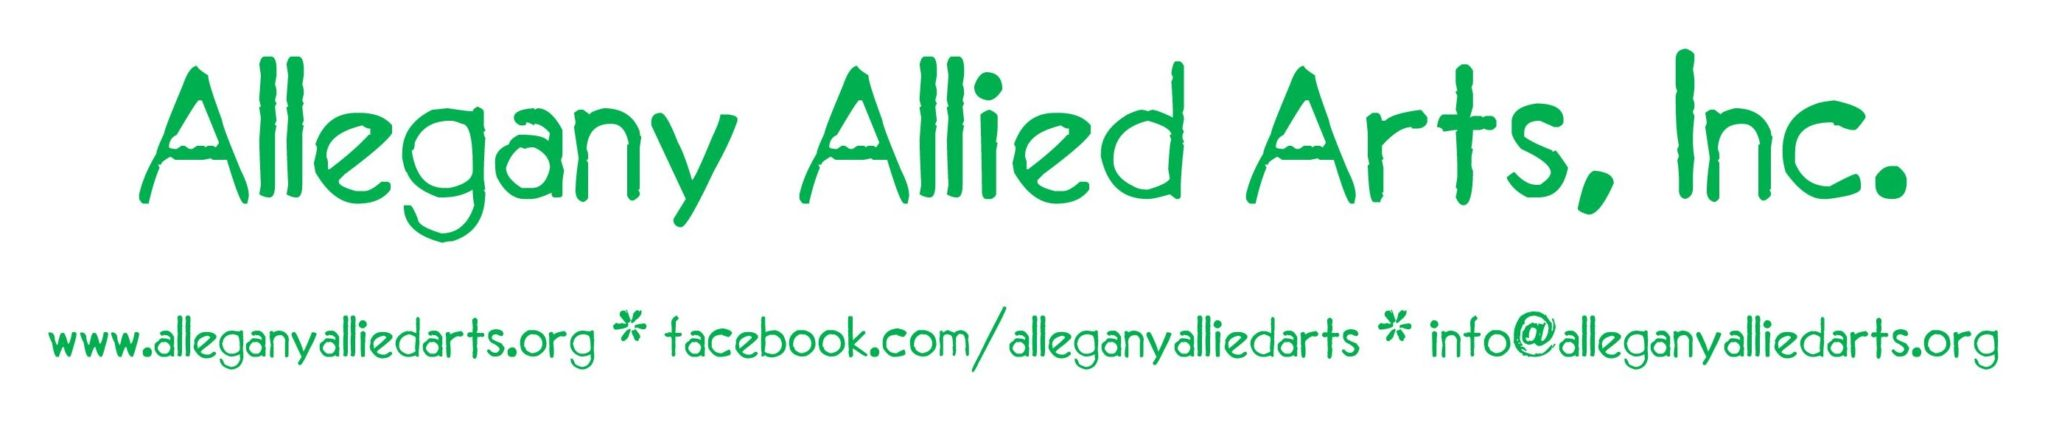 Allegany Allied Arts, Inc.